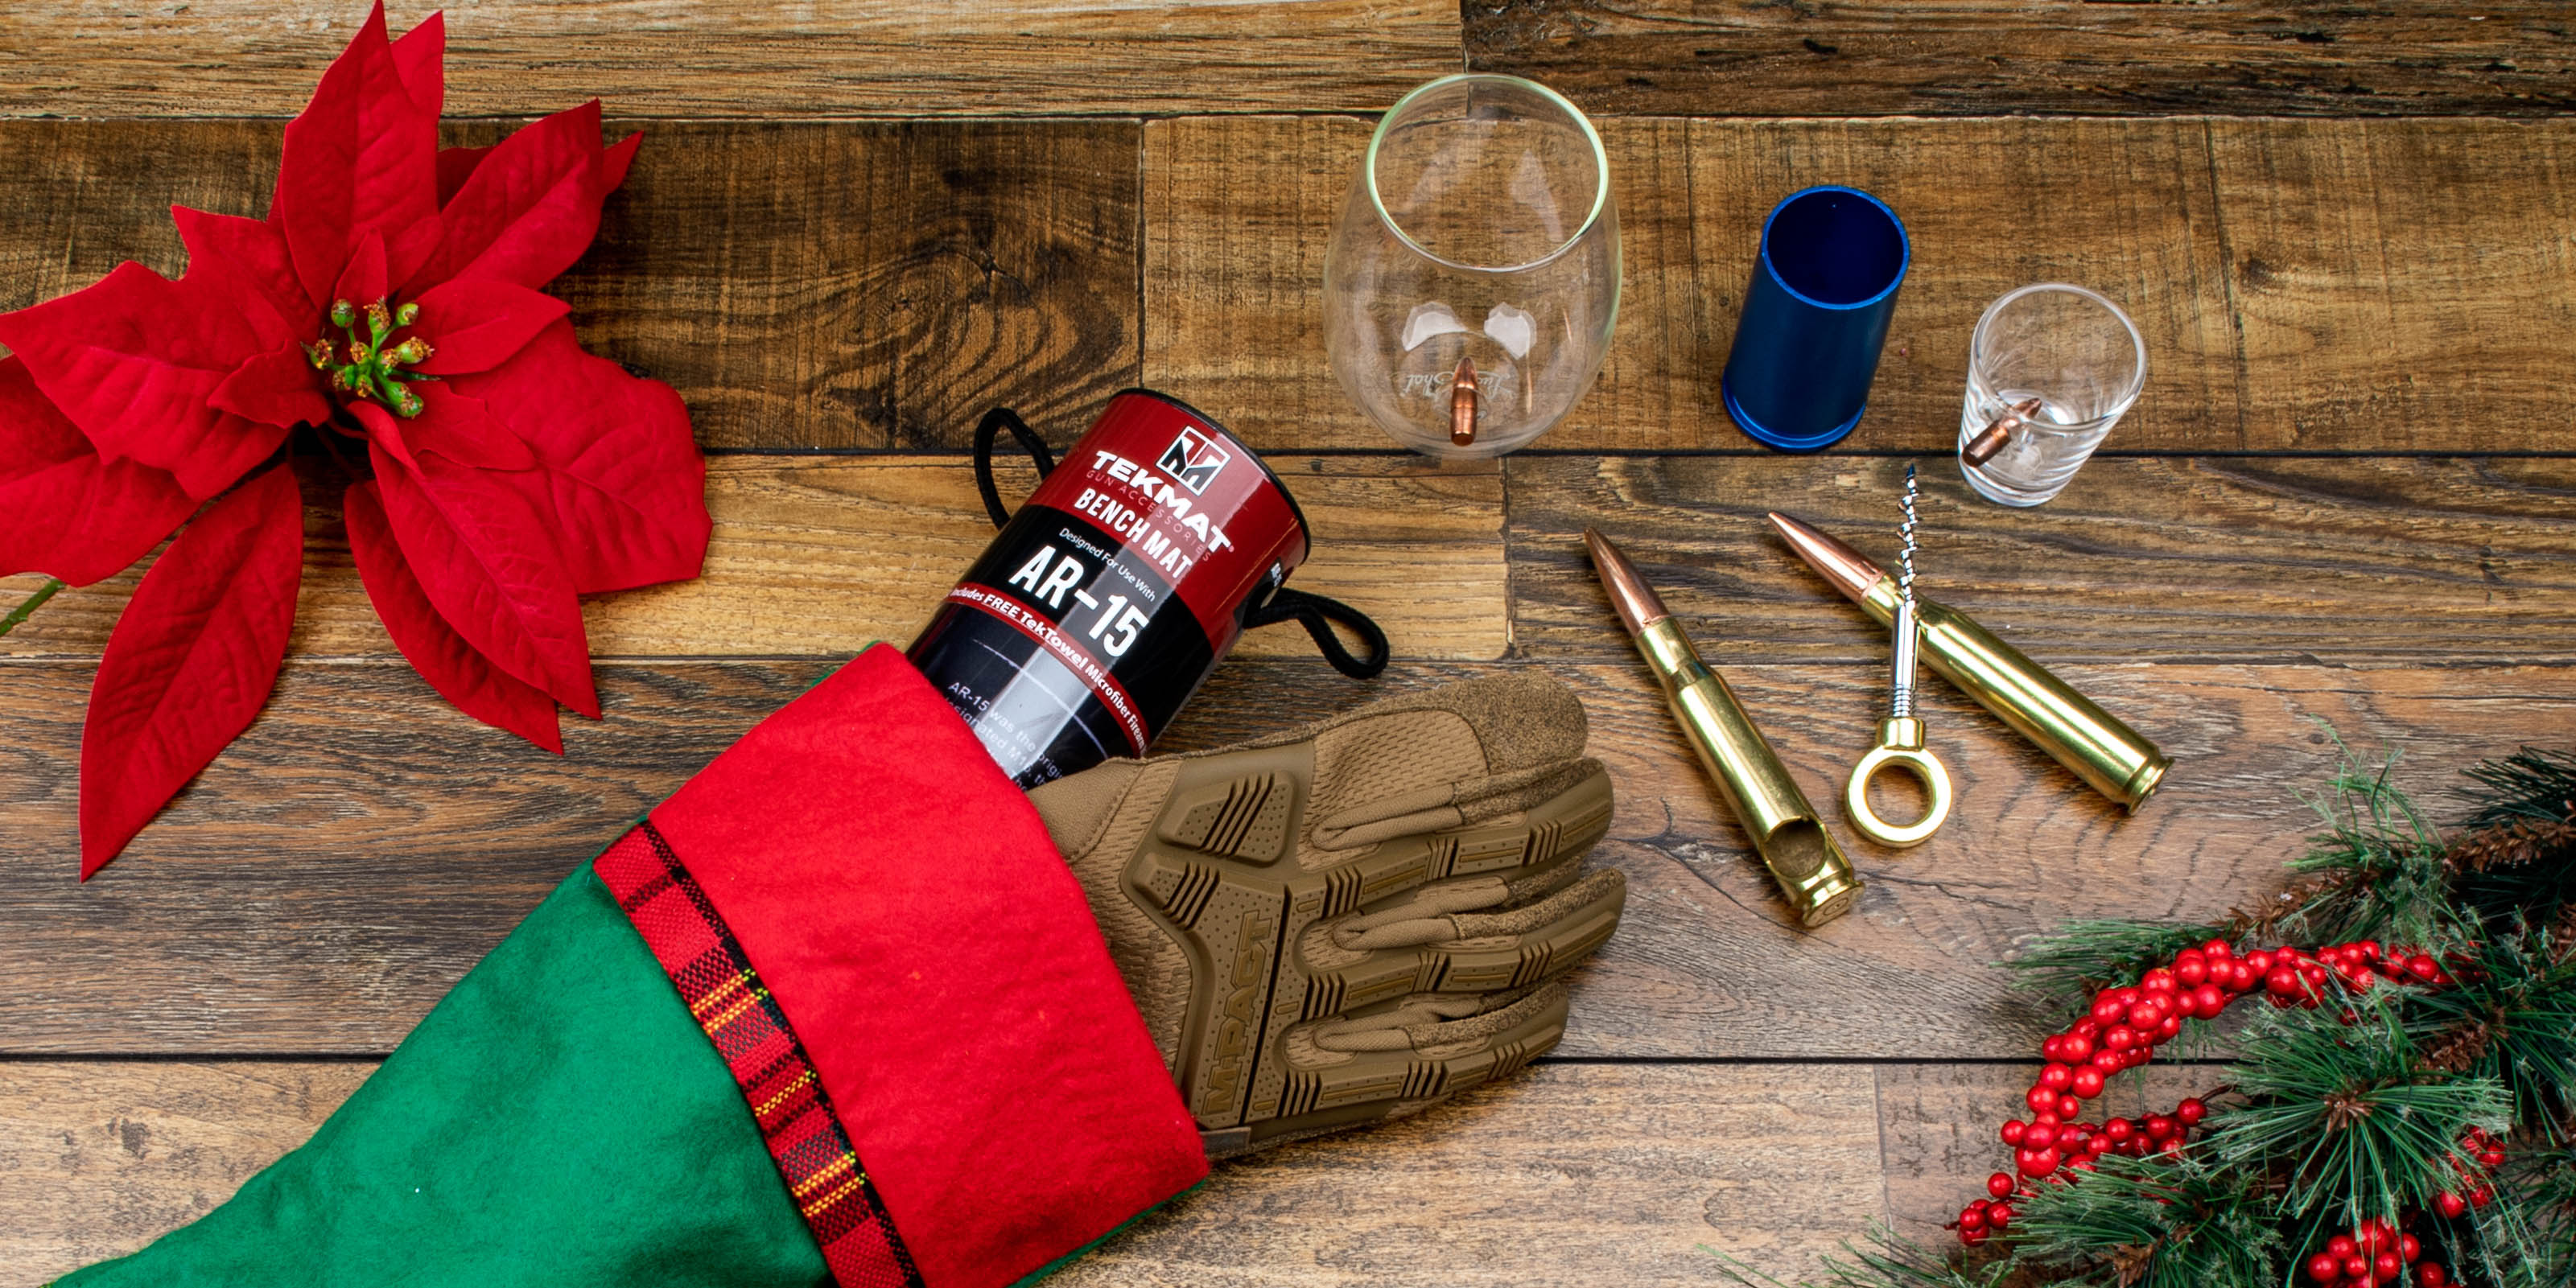 Primary Arms gifts under $20 from Lucky Shot USA, TekMat, and Mechanix.